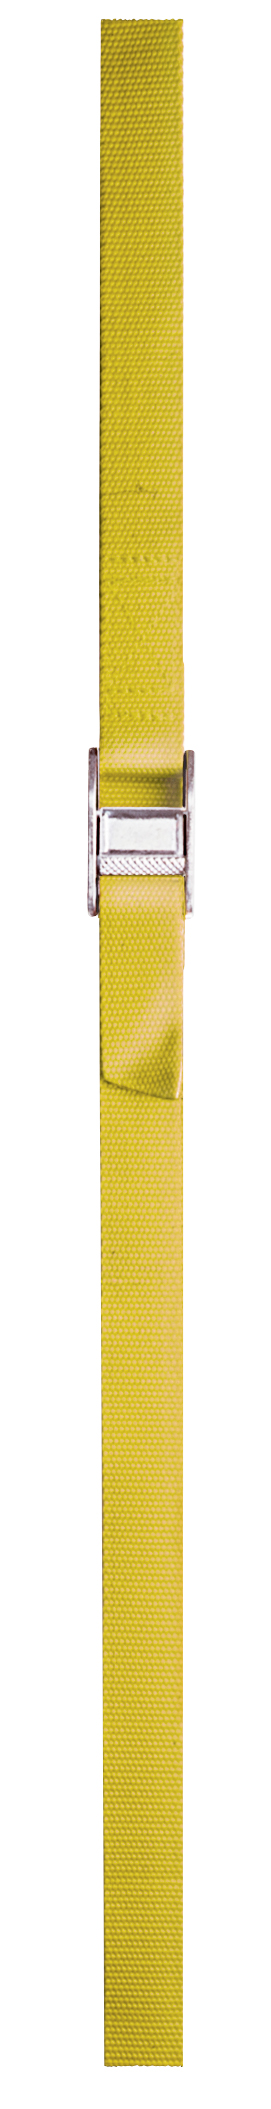 DOTTIE WS04 4FT WEB STRAP (YELLOW)